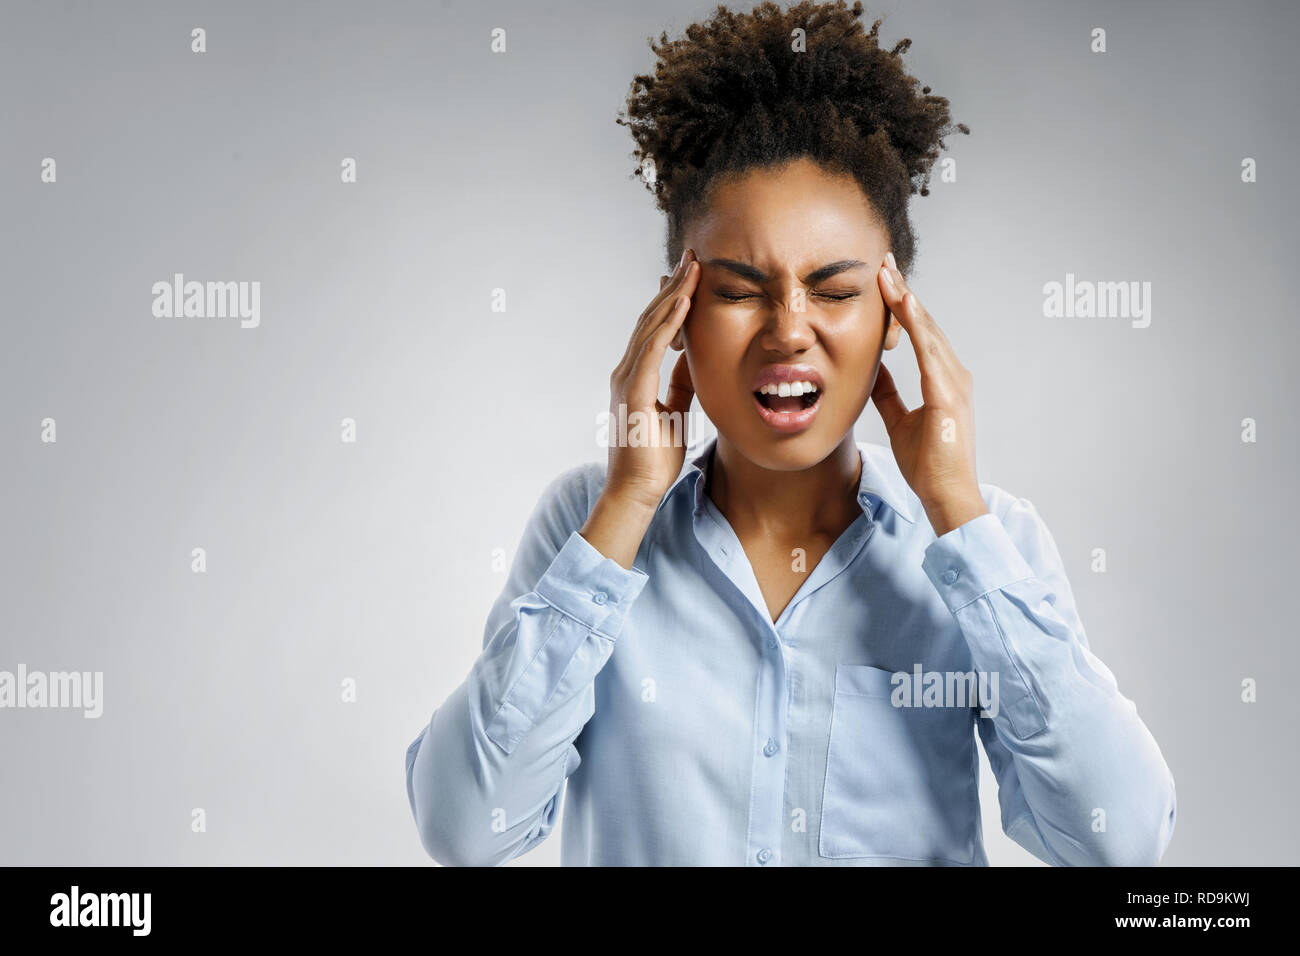 Woman with pain in her temples. Photo of african american woman in blue shirt suffering from stress or a headache grimacing in pain on gray background - Stock Image